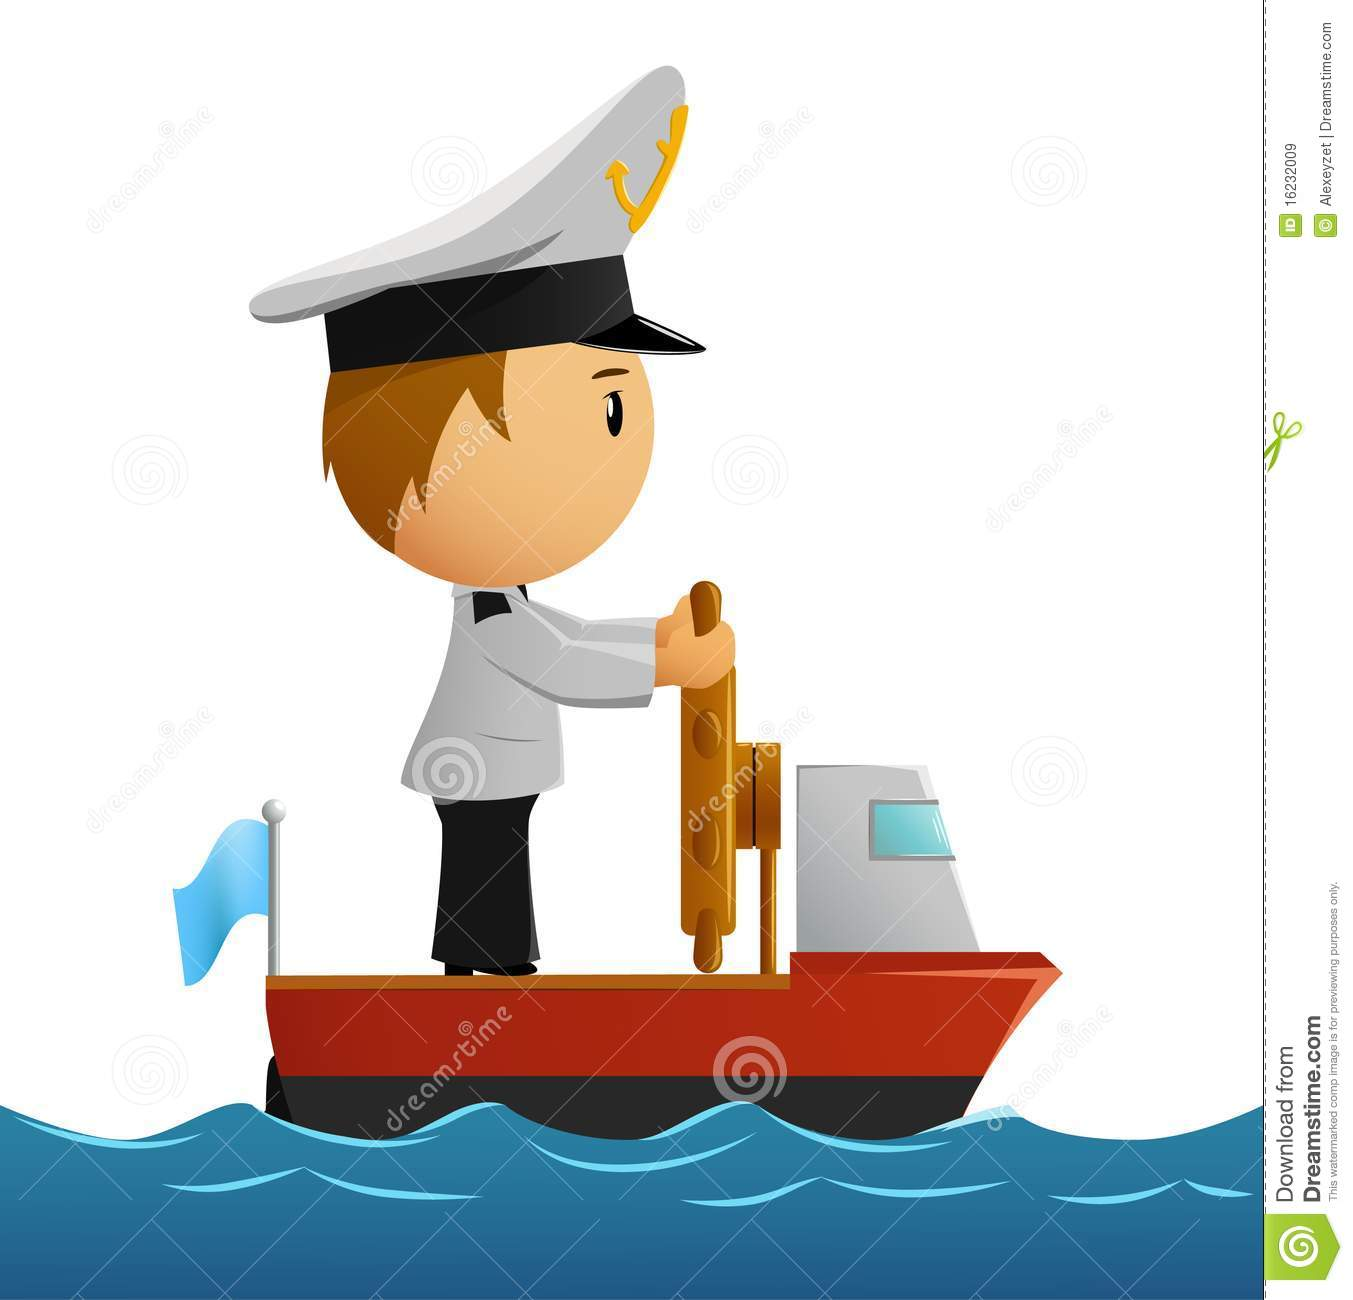 cartoon captain sailor in uniform on the ship royalty free stock images image 16232009 tugboat clip art image tugboat clipart free black and white